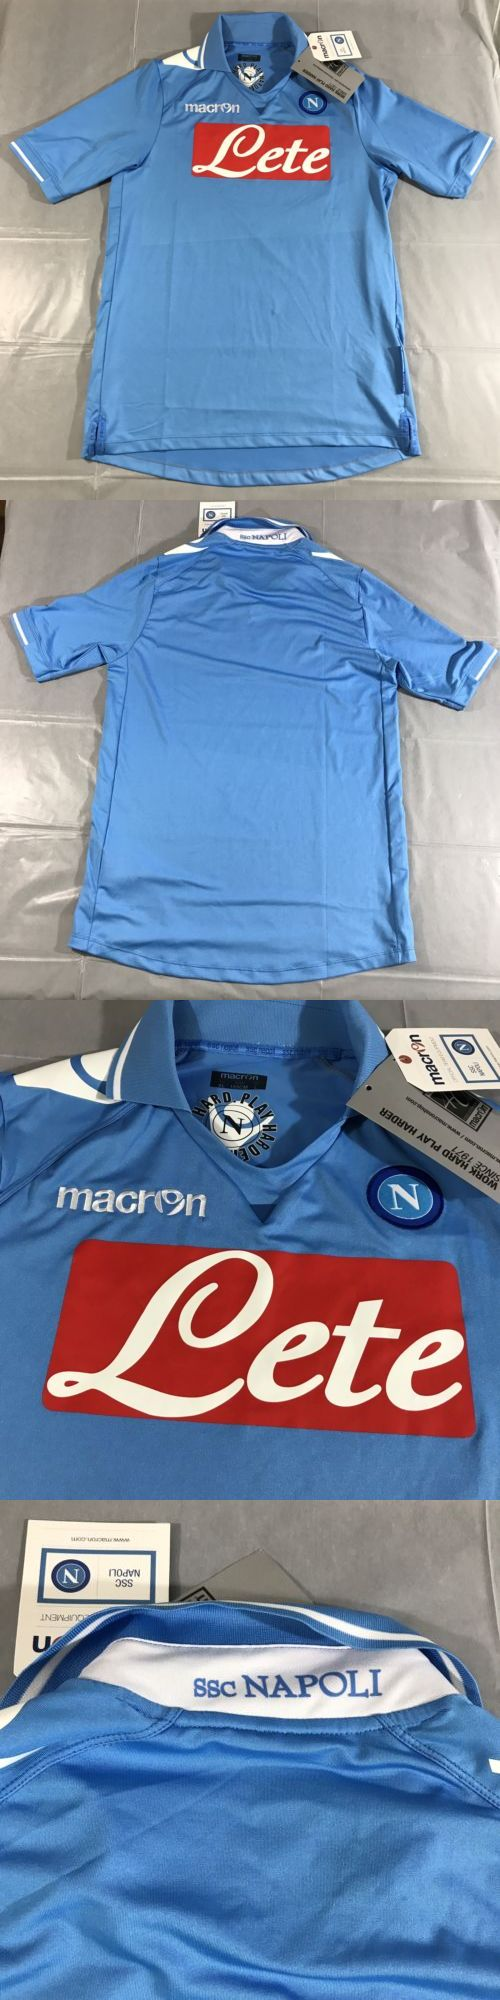 Soccer-International Clubs 2887: Ssc Napoli Maglia Gara Home Soccer Jersey Shirt L Macron Italy Futbol Football -> BUY IT NOW ONLY: $37.11 on eBay!